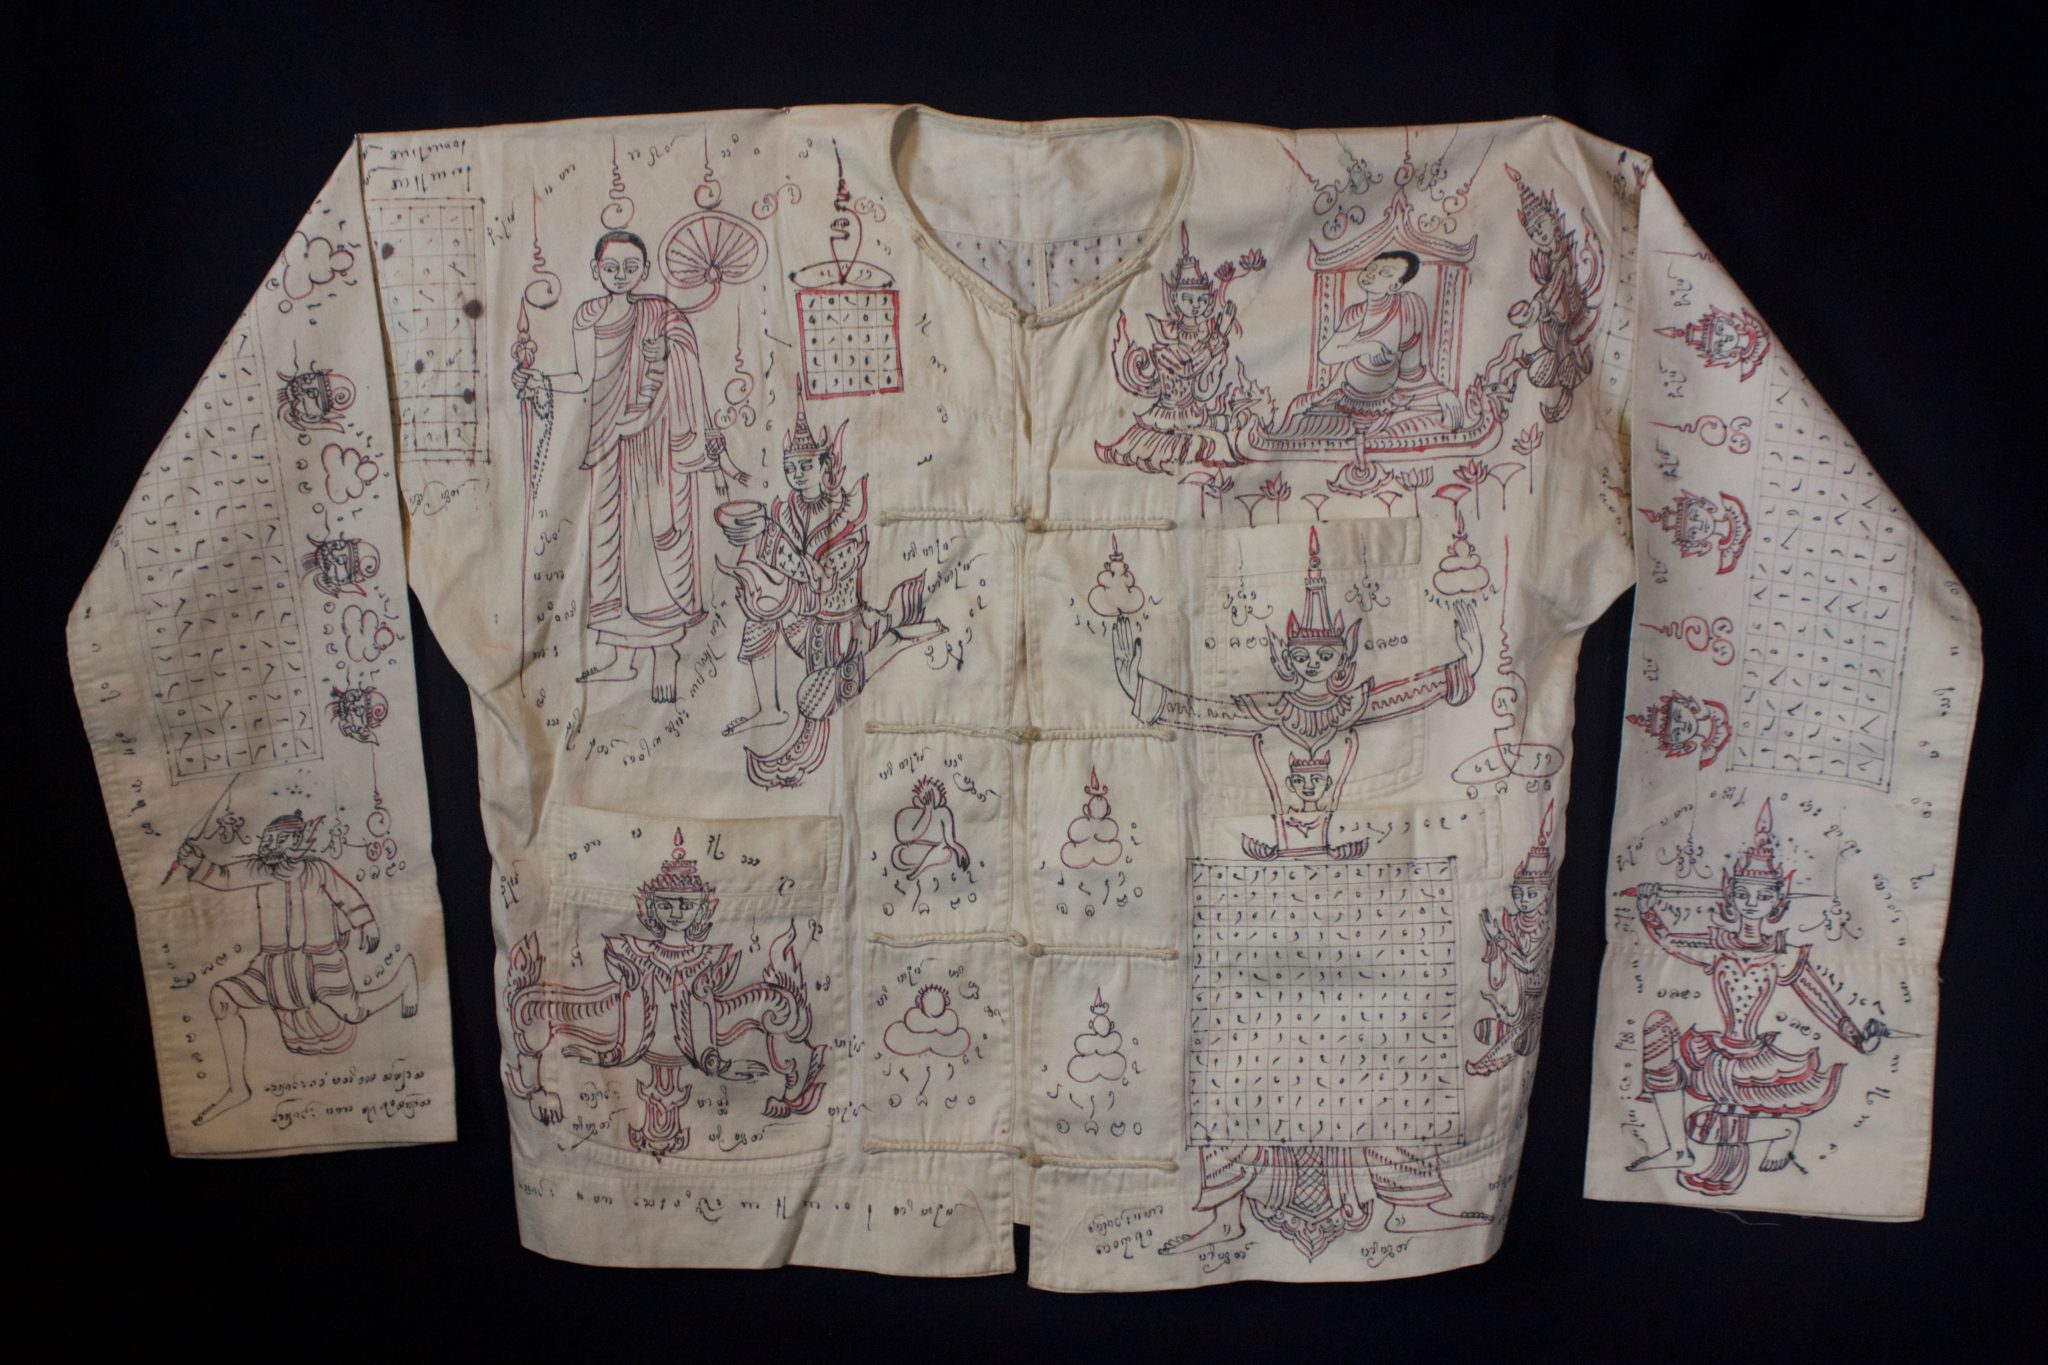 "Amulet Yantra Shirt - extremely rare and powerful protective garment Thailand Vietnamese tribal shaman Mid 20th c. Cotton, ink, pigment Handmade and drawn by the shaman, it depicts prayers, signs, numbers and a deities. The sacred cloth is an undergarment worn as a talisman with great protective power against physical harm, like bullets, spears, knives, wild animals and evil spirits. This one may have been commissioned by a wealthy man who felt he needed protection. Soldiers would also wear these if they could afford one. 21"" x 61"" $2900"